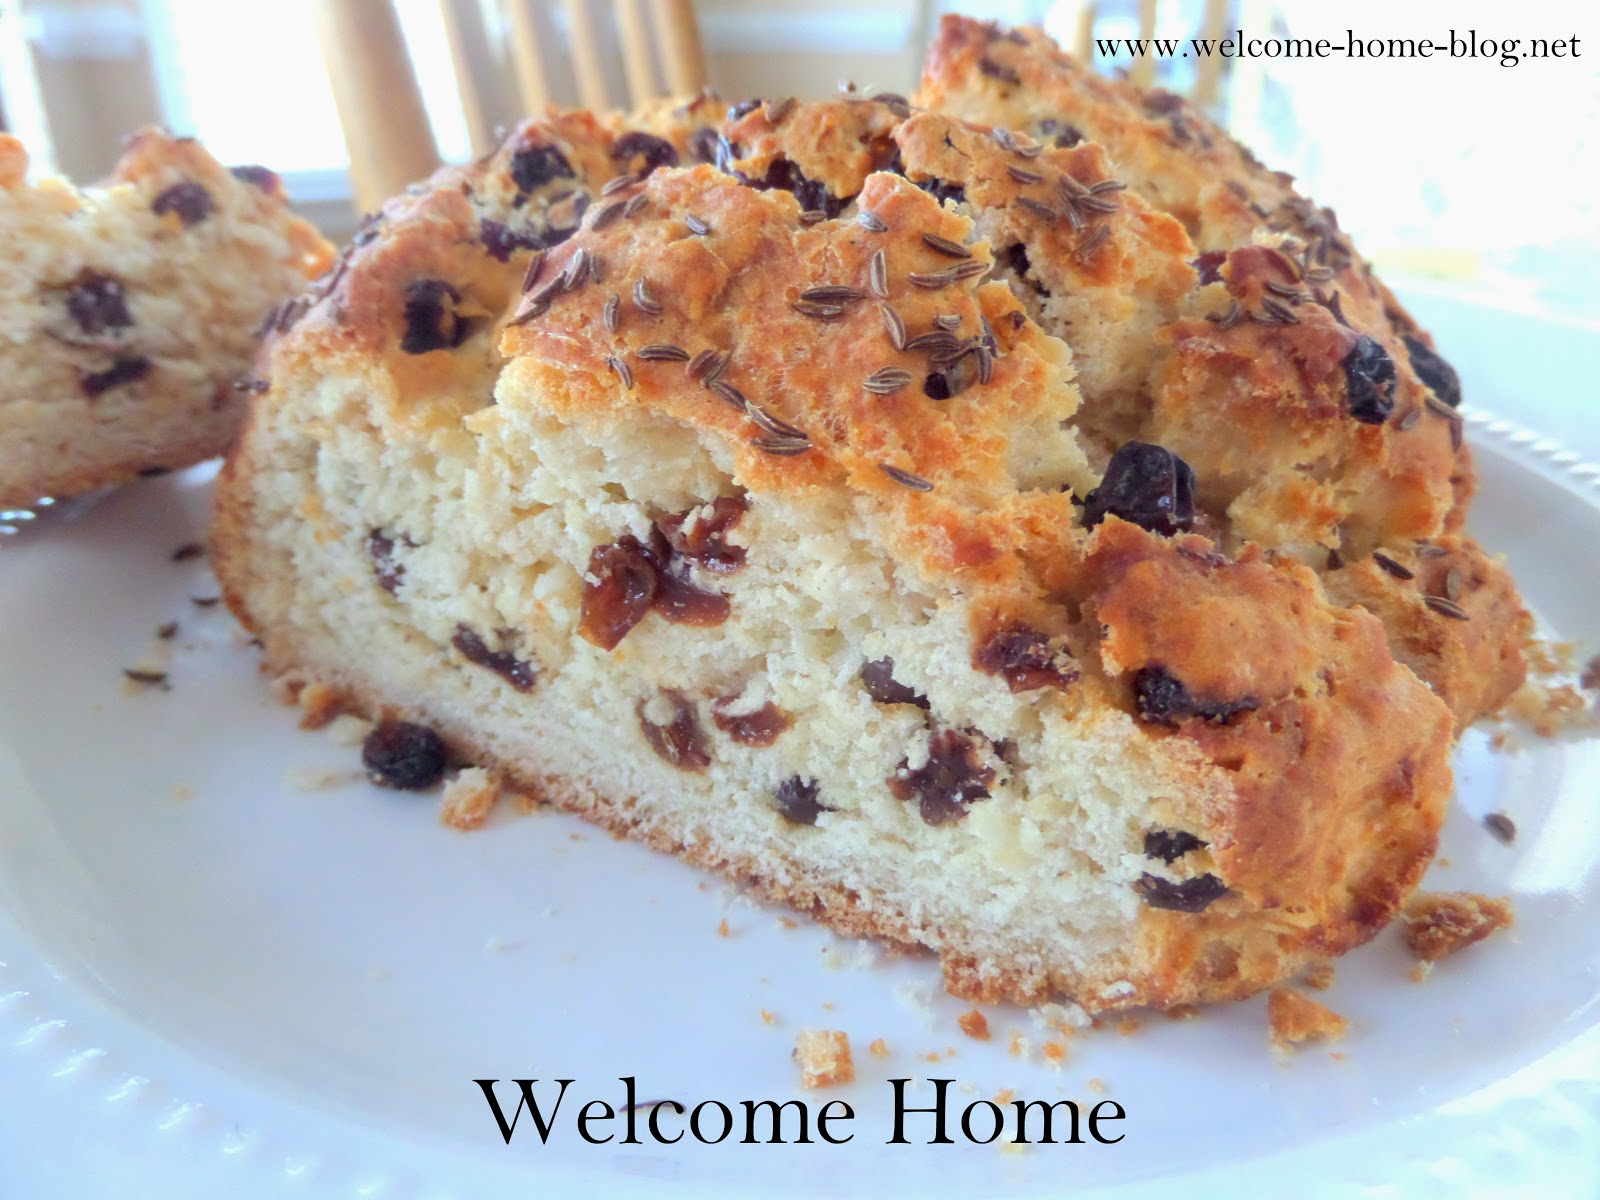 Welcome Home Blog: Irish Soda Bread with Raisins and Caraway Seed